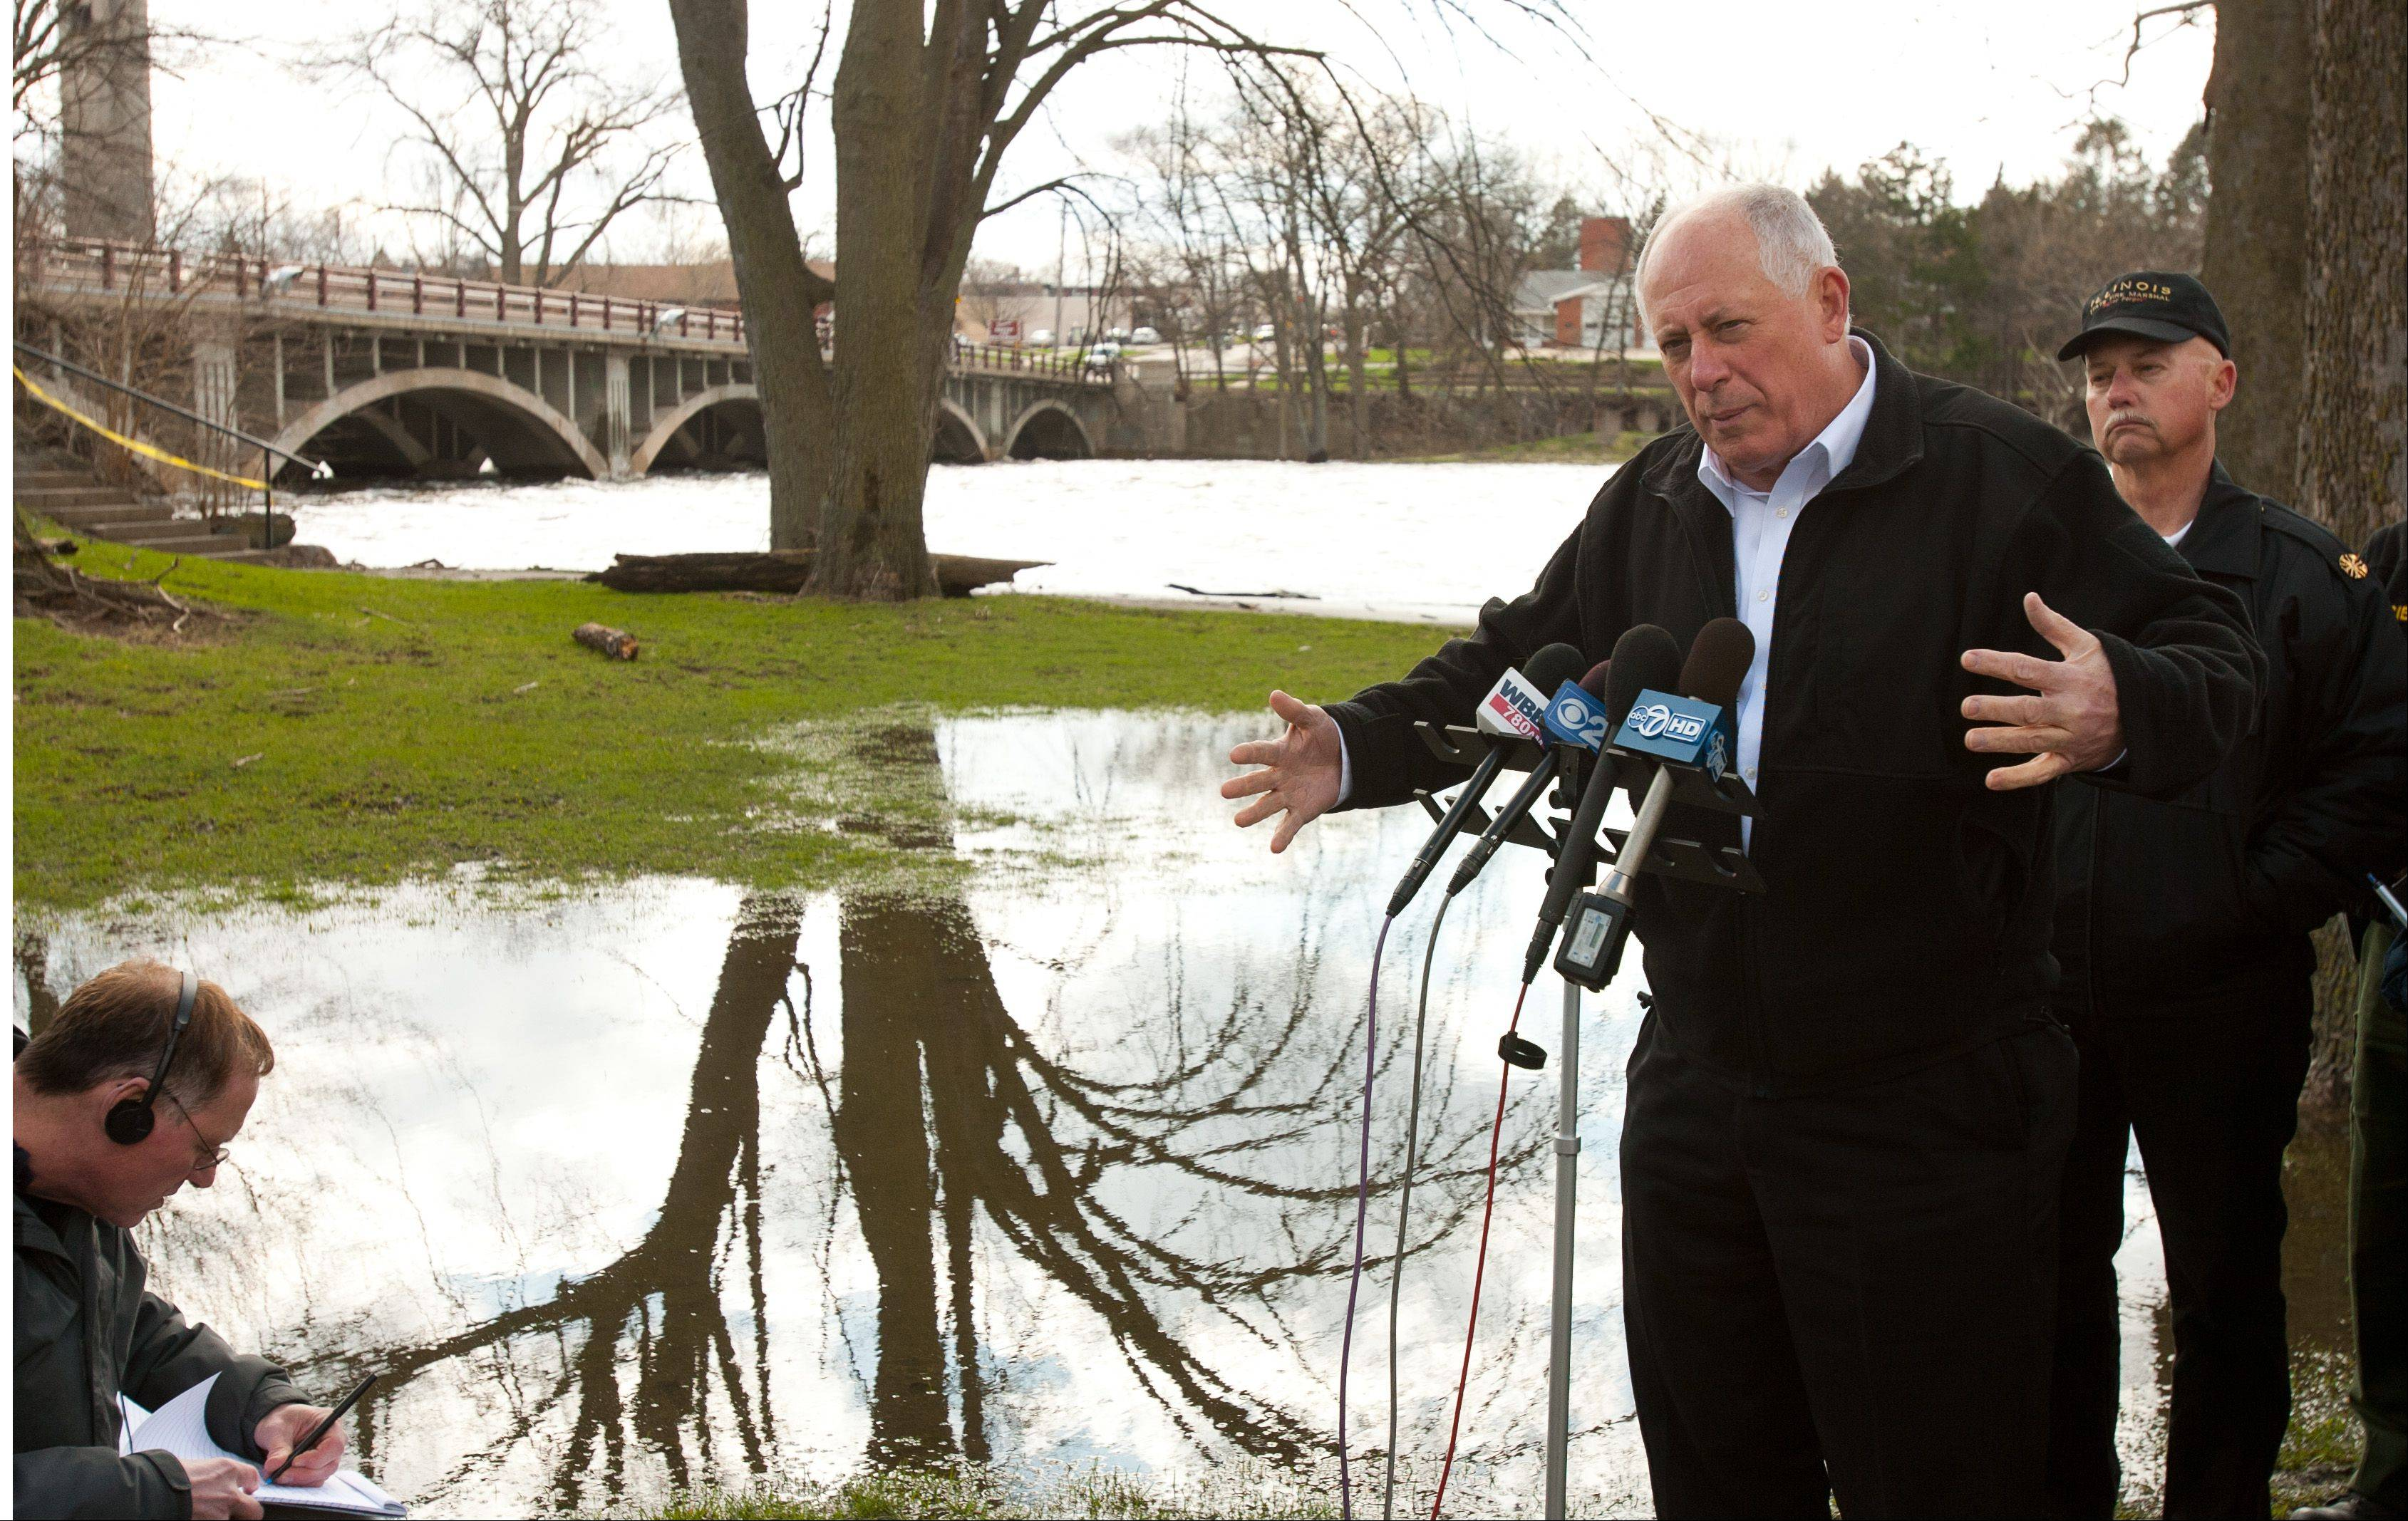 Quinn tours flood damage, urges towns to work together